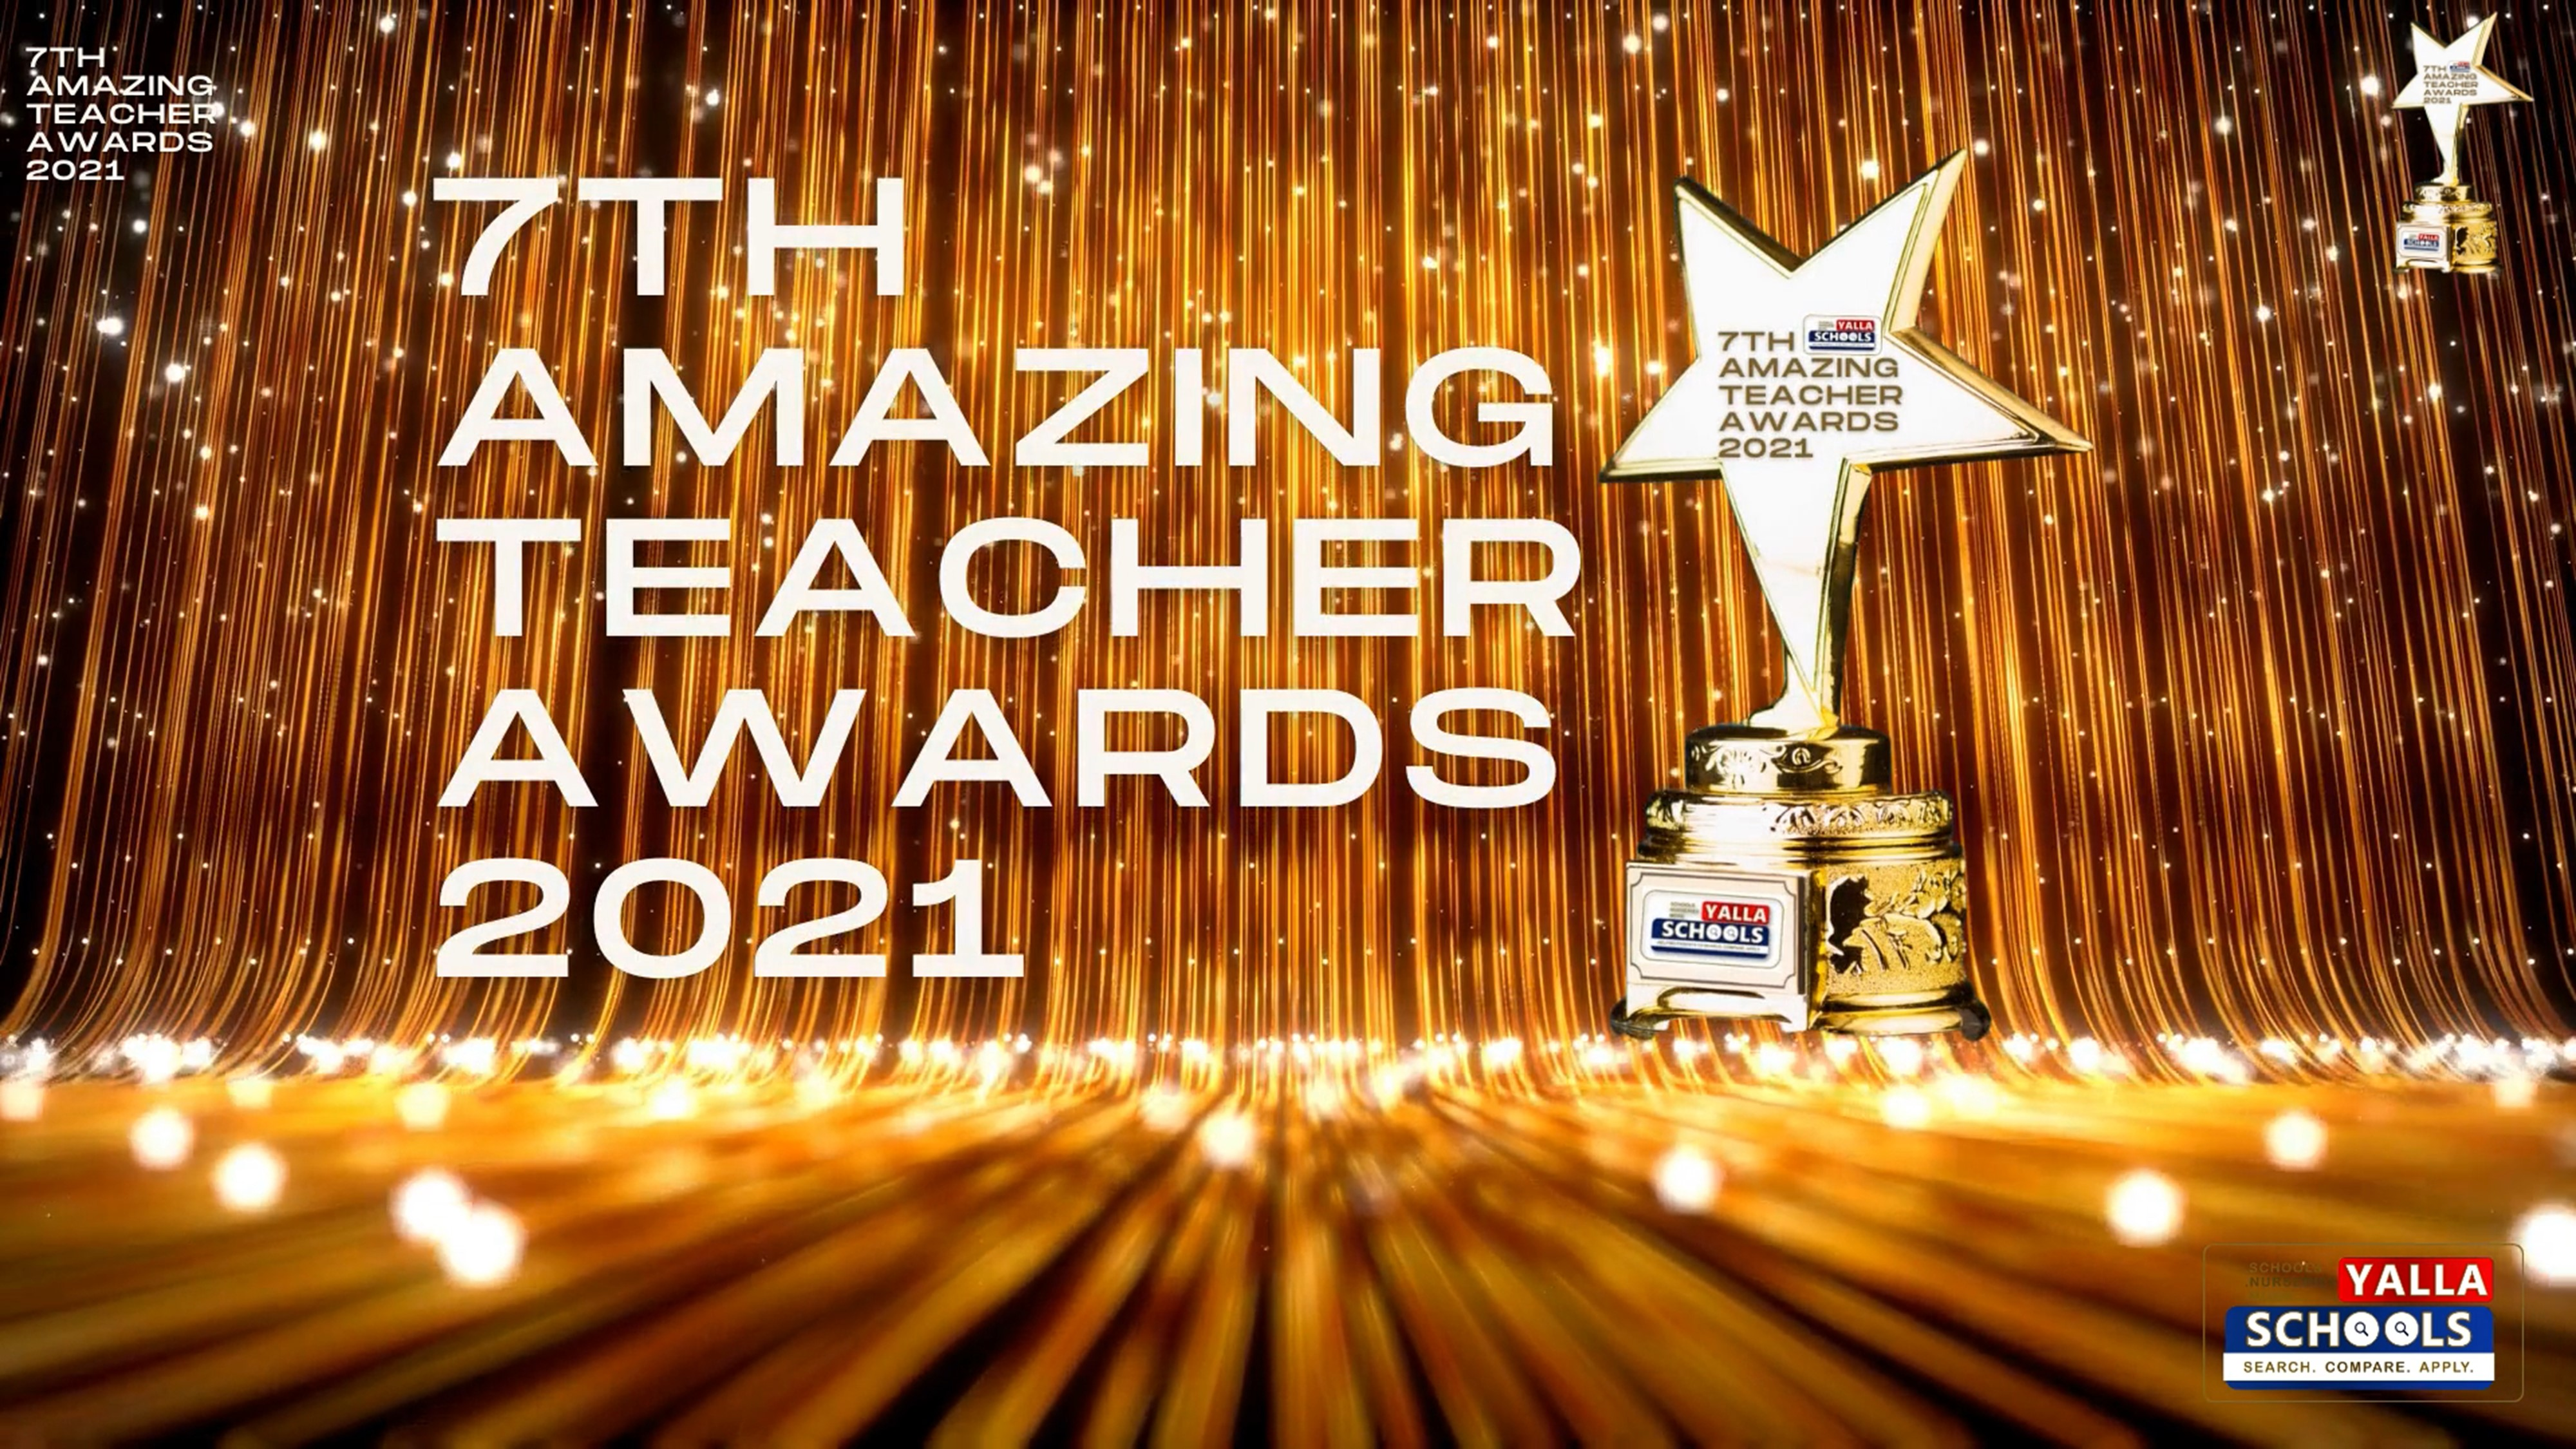 7th_Amazing_Teacher_Awards_2021_-_We_See_You_We_Salute_You_We_Celebrate_You